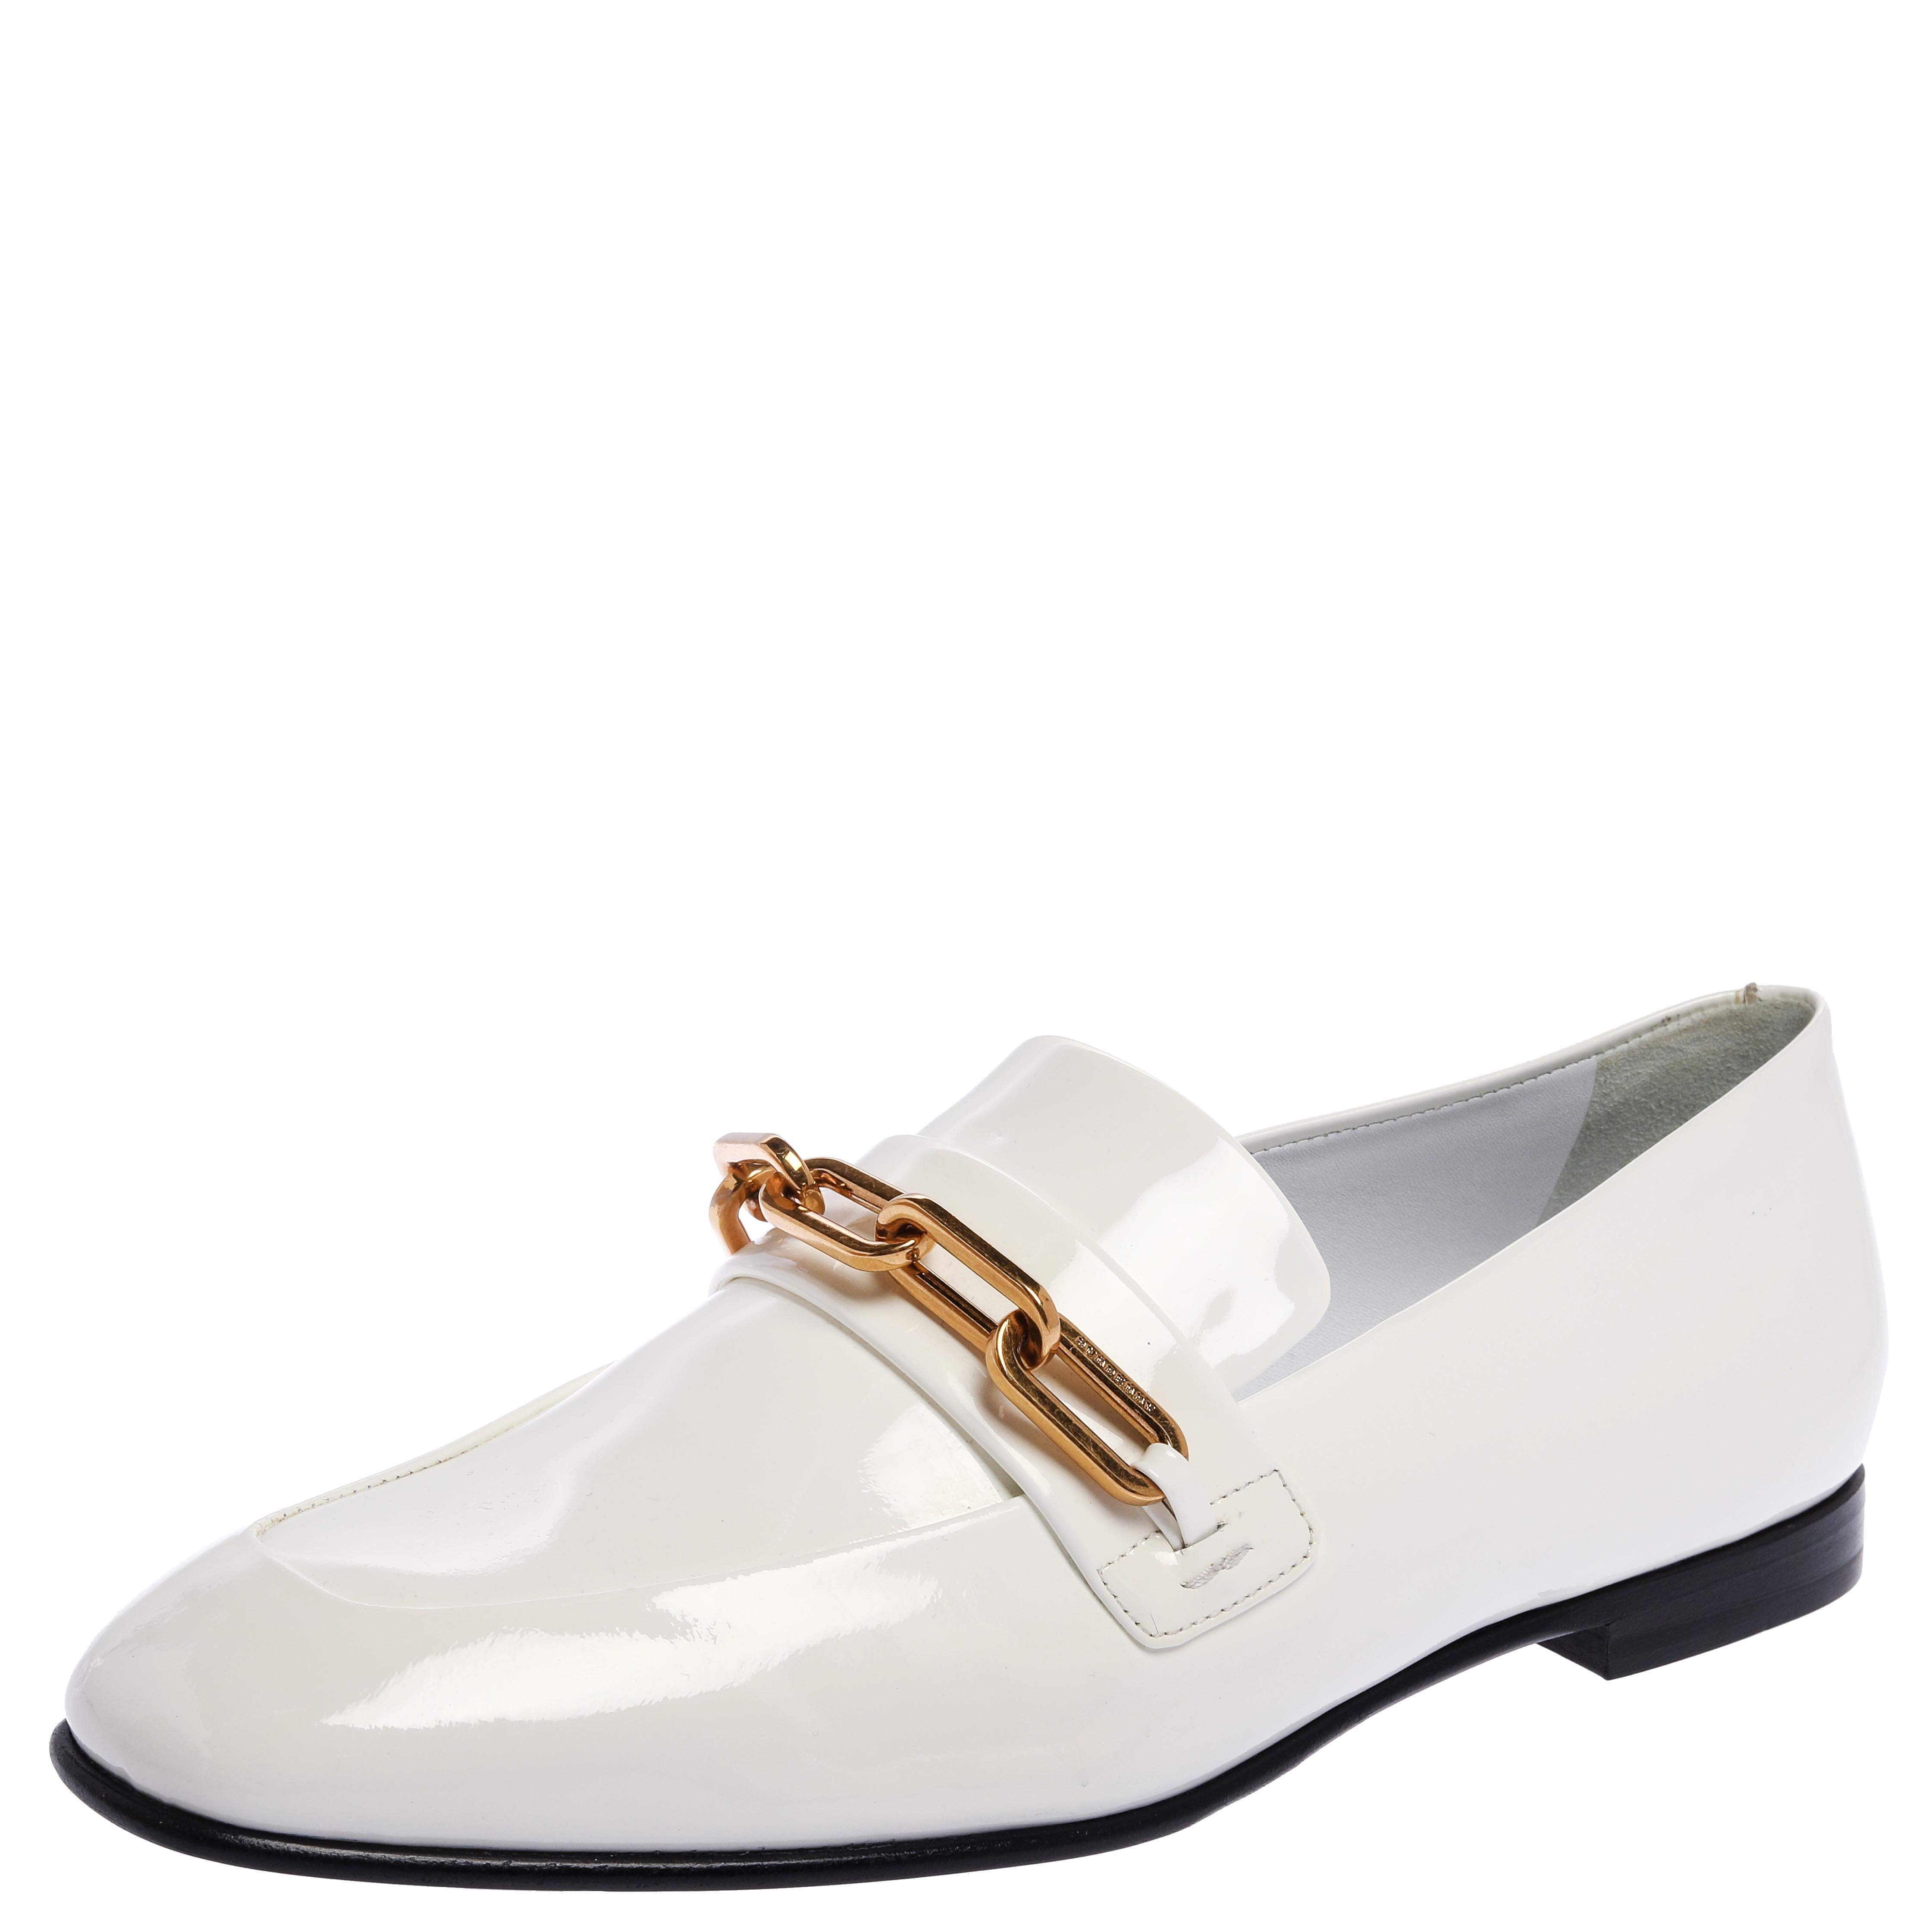 Burberry White Patent Leather Chain Link Loafers Size 39.5